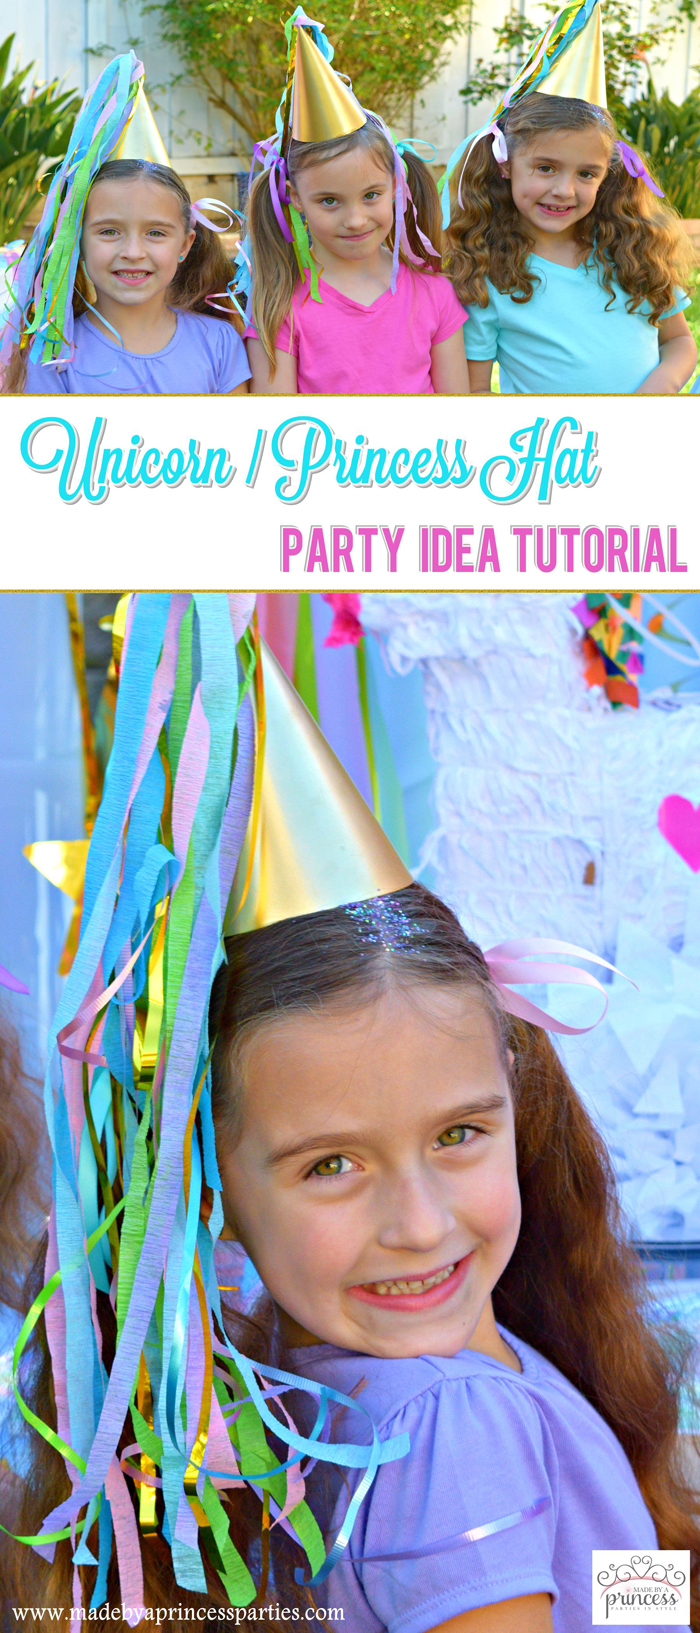 unicorn princess party hat idea tutorial pin it